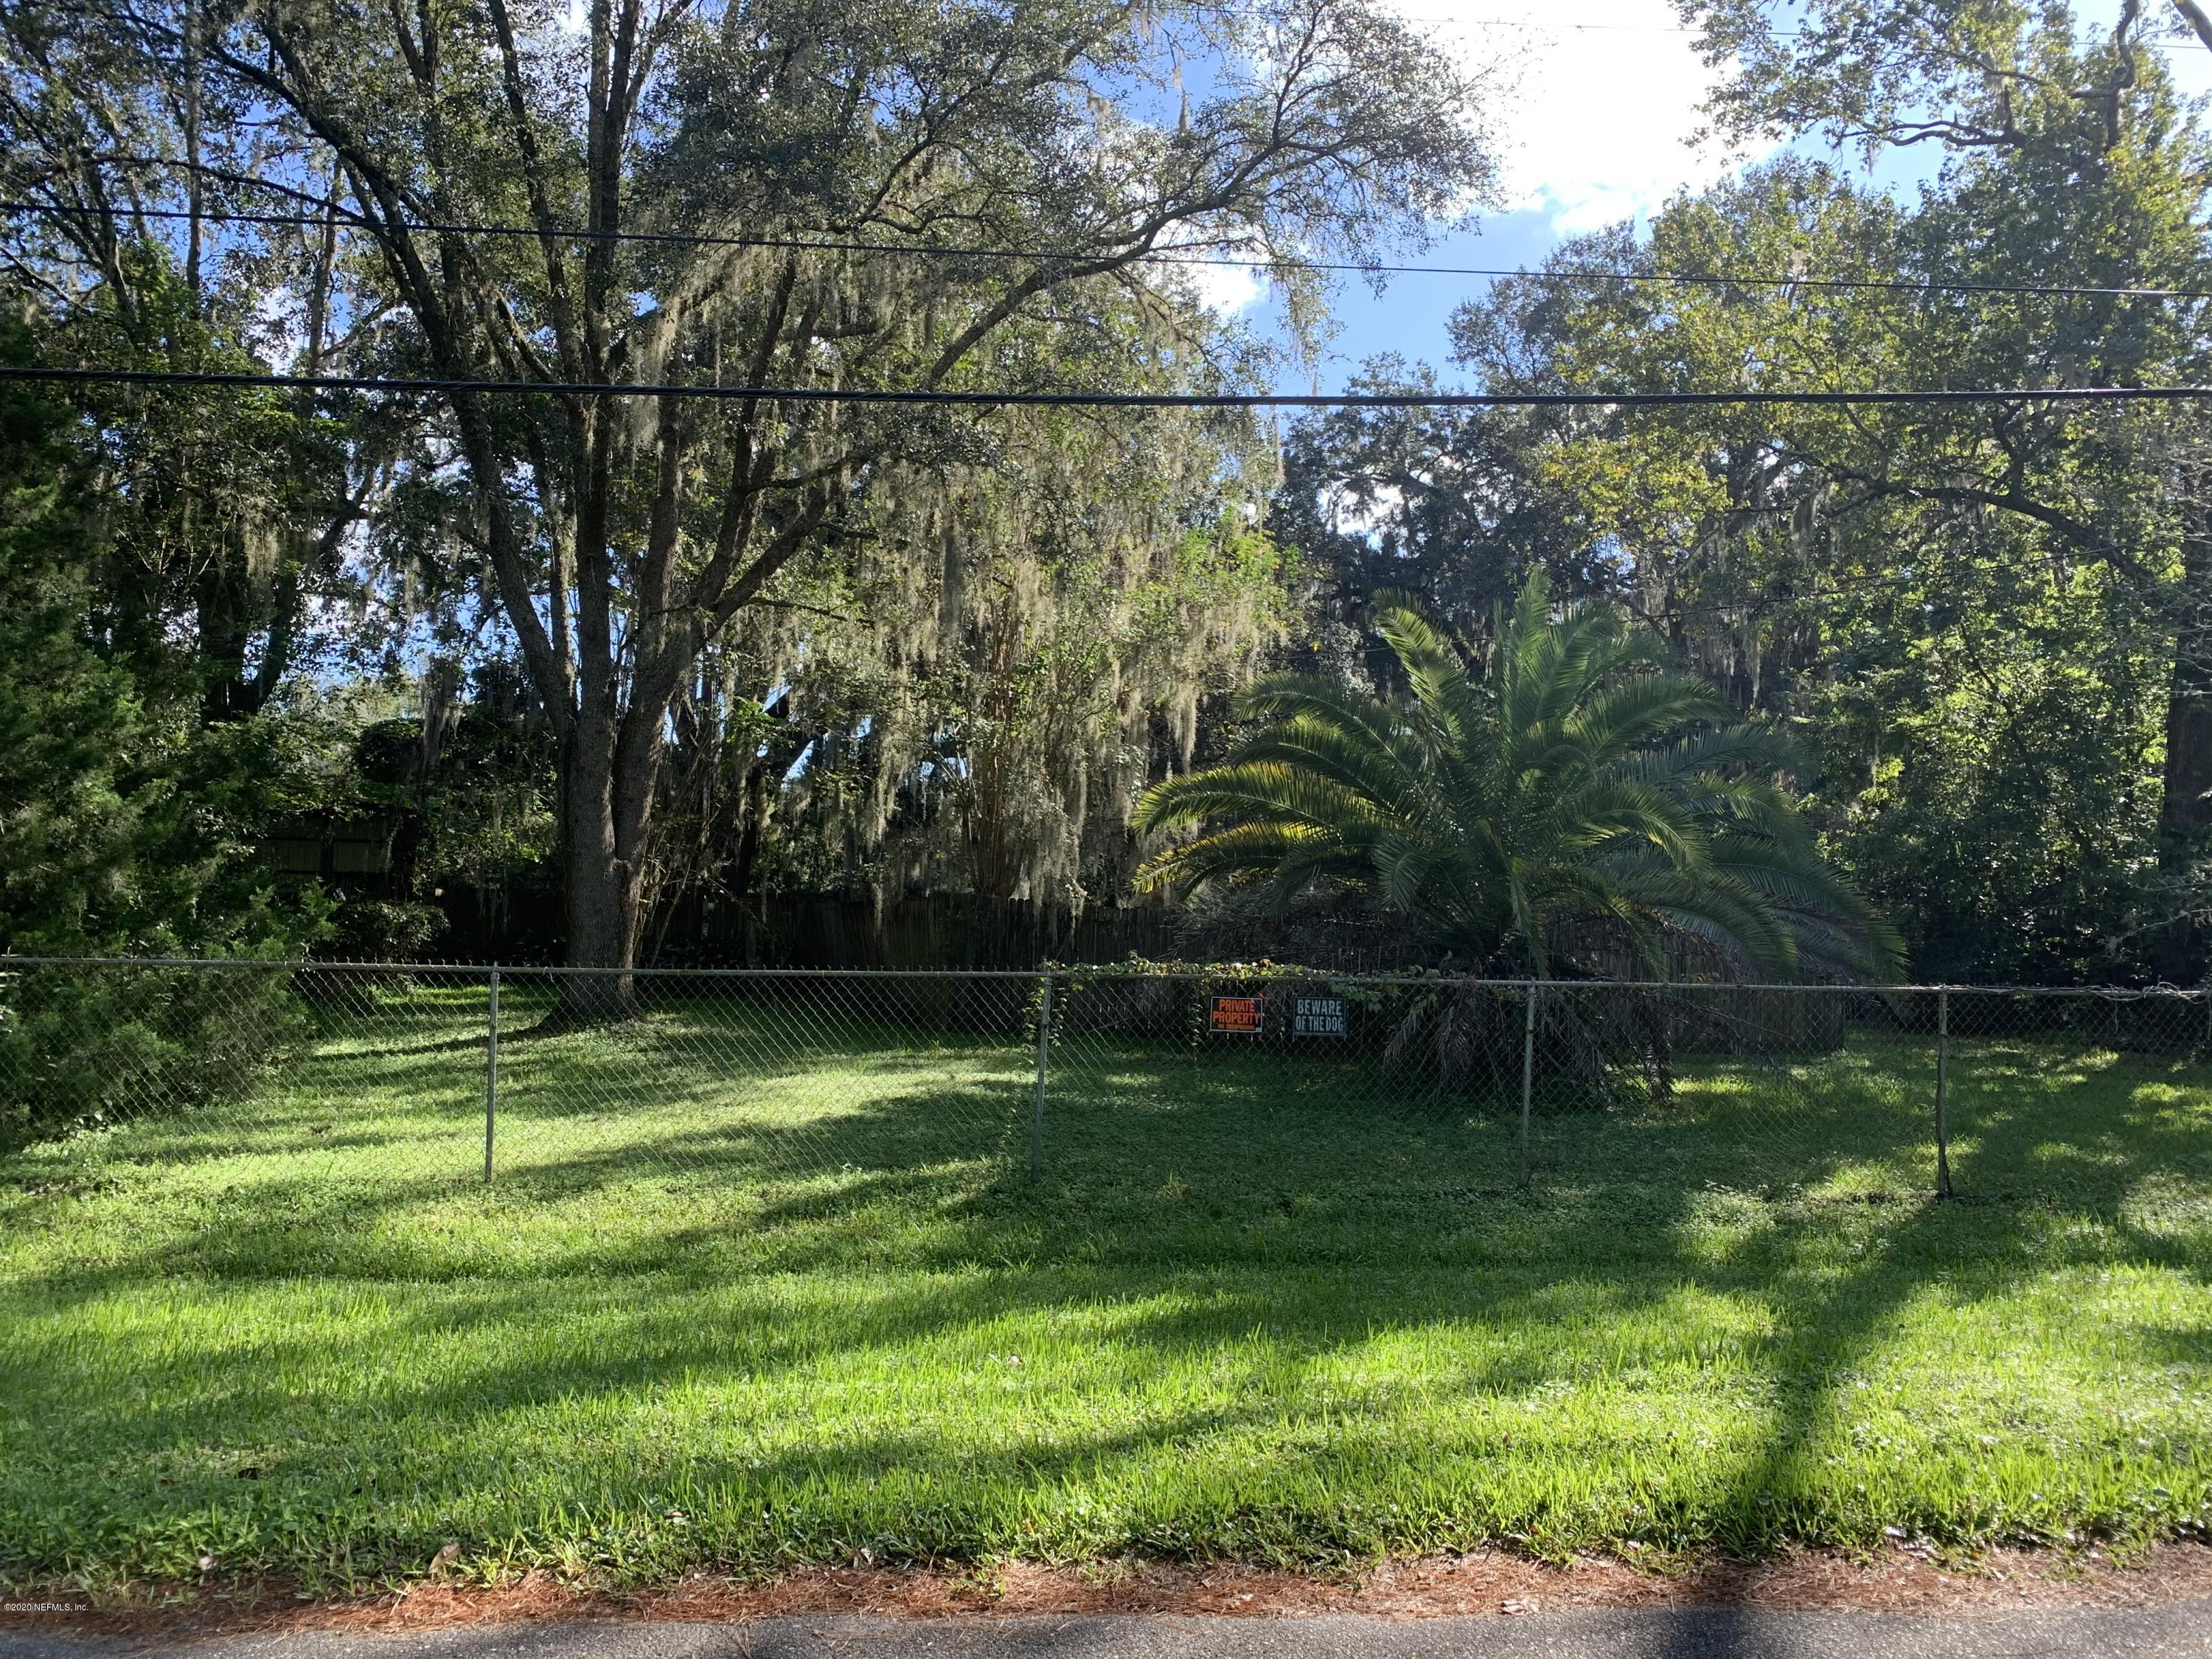 7791 NEWTON, JACKSONVILLE, FLORIDA 32216, 2 Bedrooms Bedrooms, ,1 BathroomBathrooms,Residential,For sale,NEWTON,1082181